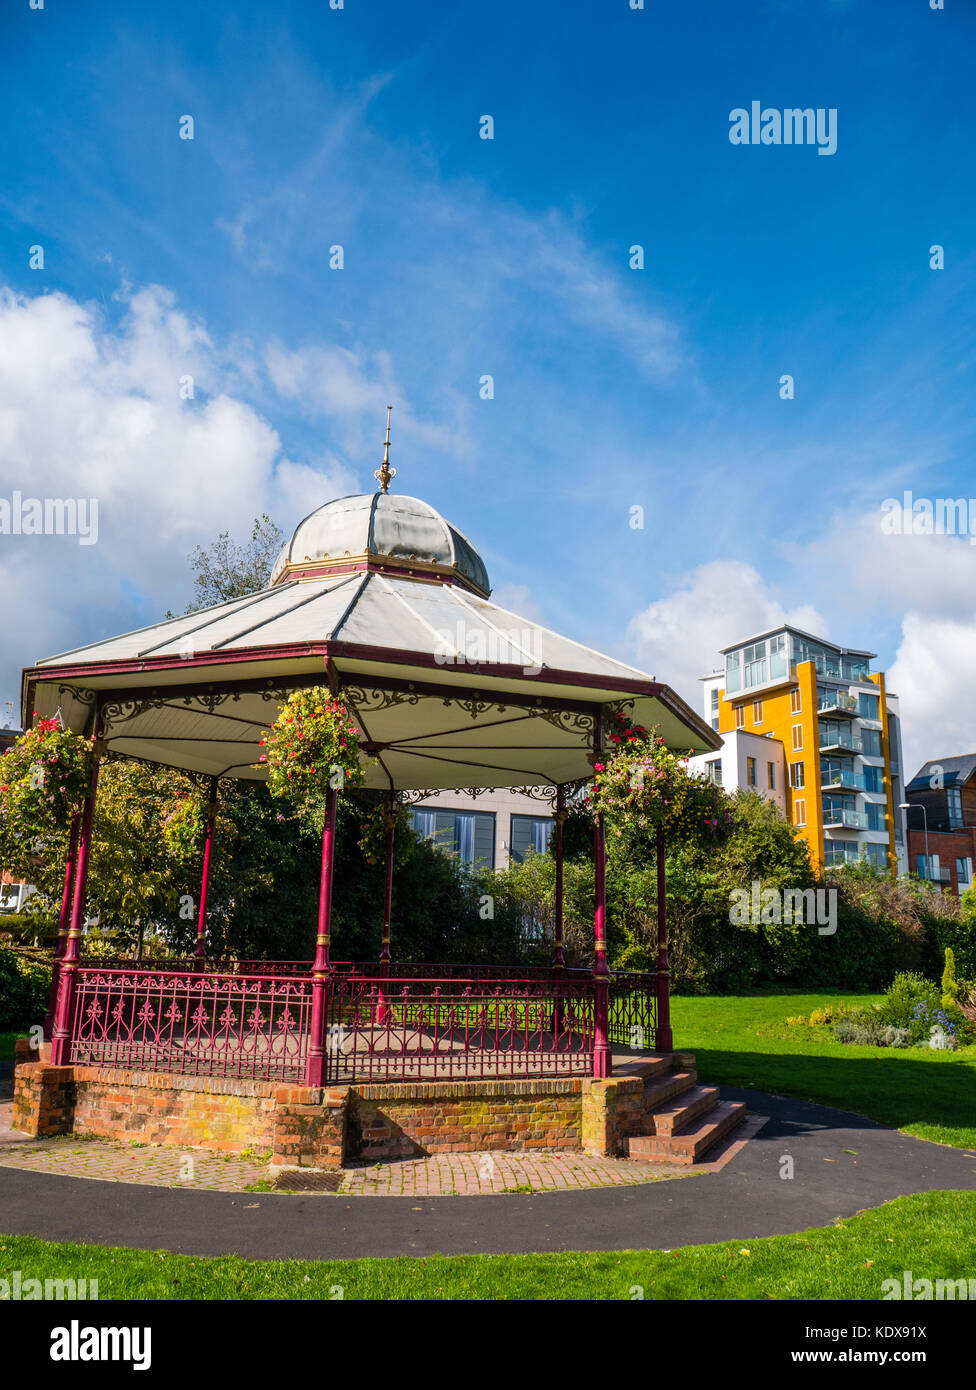 Bandstand, Victoria Park, Newbury, Reading, Berkshire, England - Stock Image